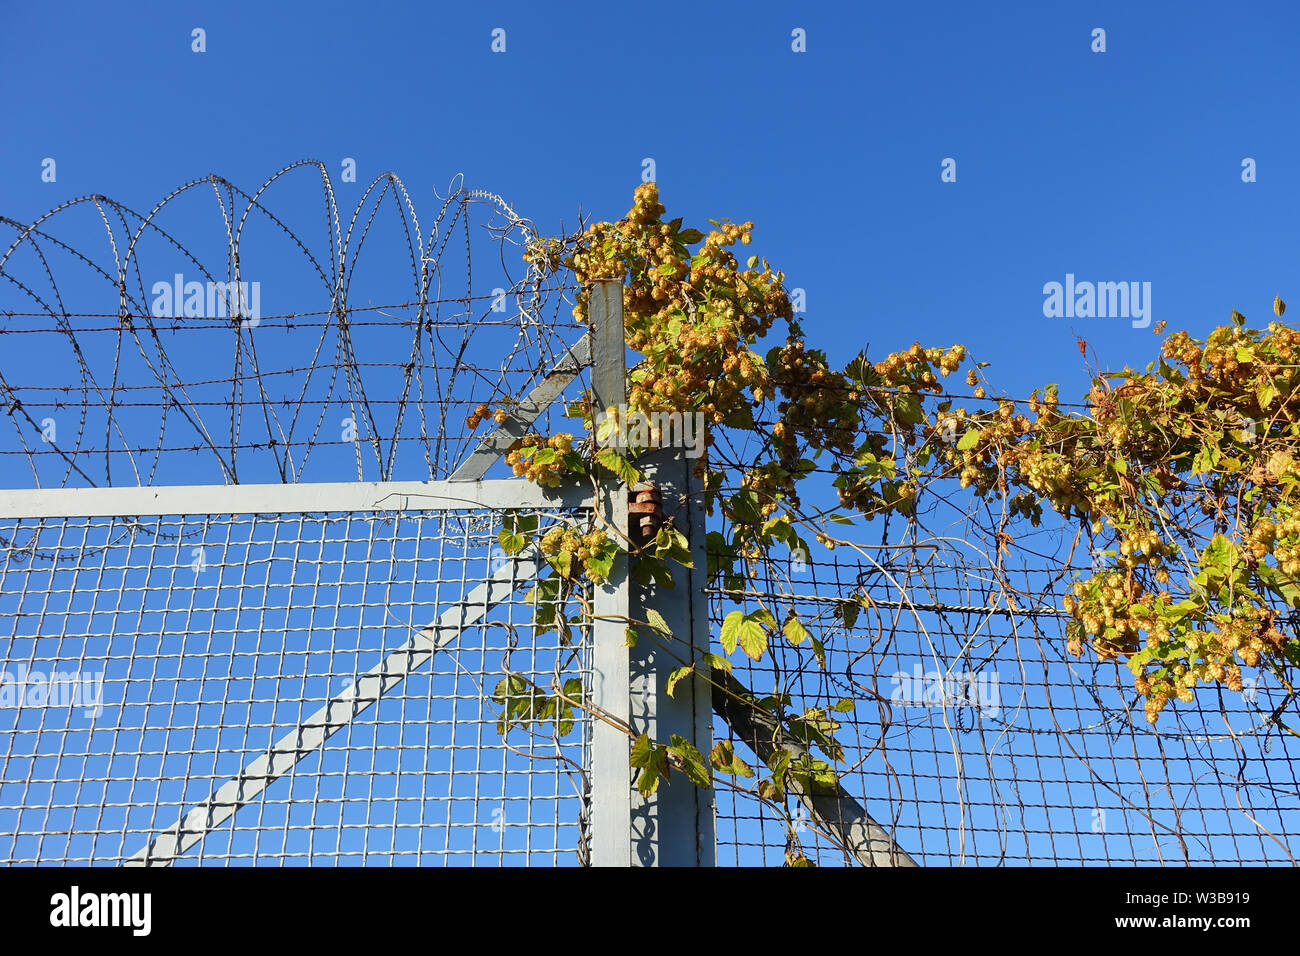 Border fence in Hungary - Stock Image